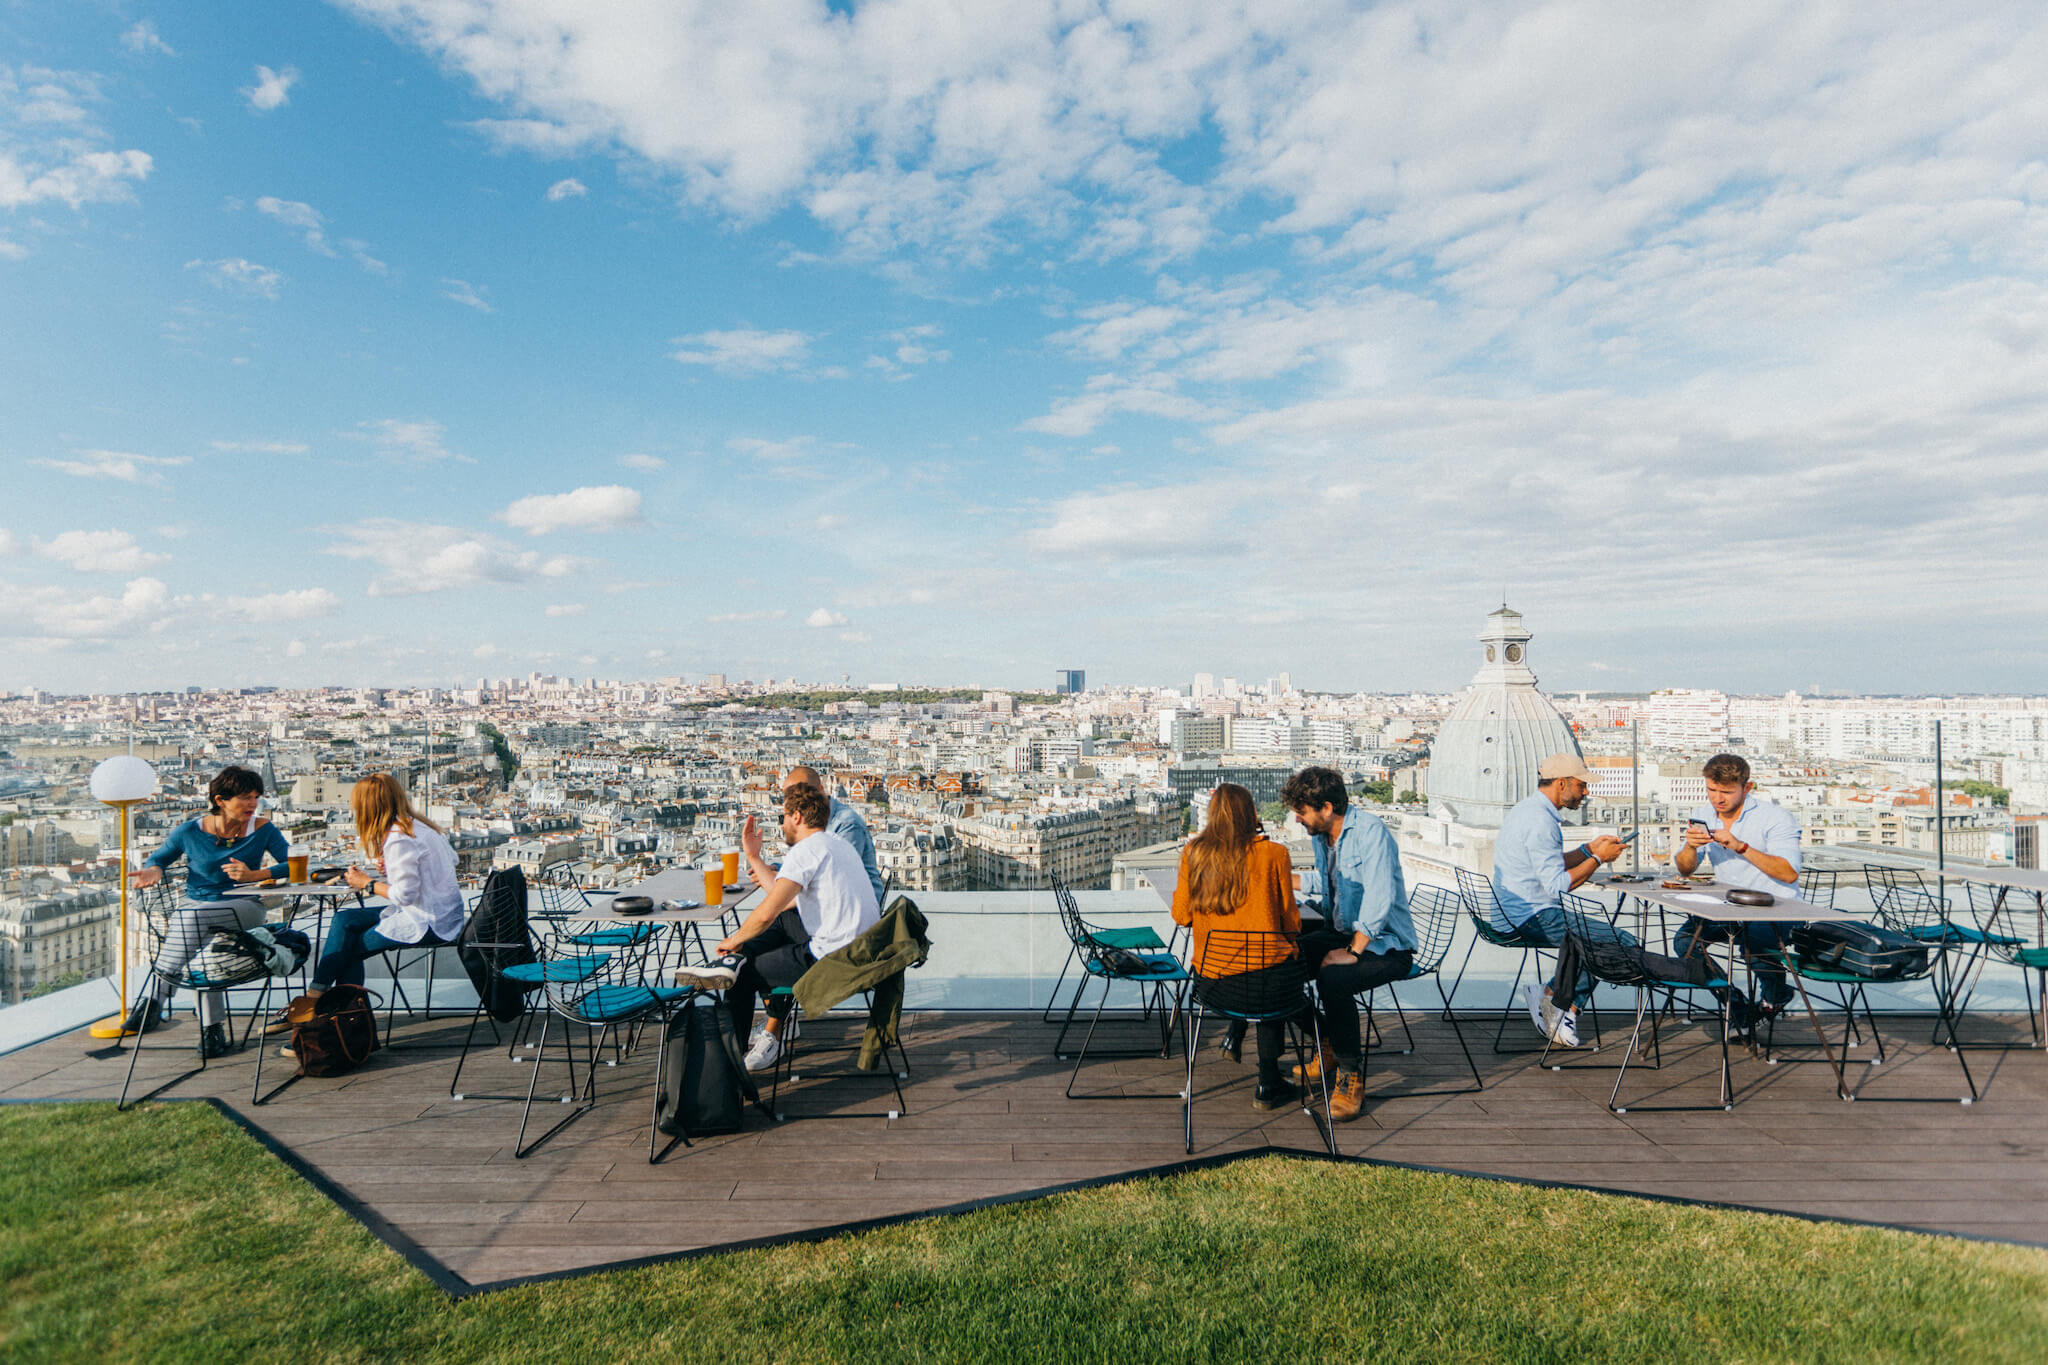 The terrace of Laho, a rooftop bar in Paris. There are four couples sitting at tables on a wooden patio with grass in front of them. Behind them is a view of the Parisian rooftops. It's a sunny day with a blue sky and some clouds.